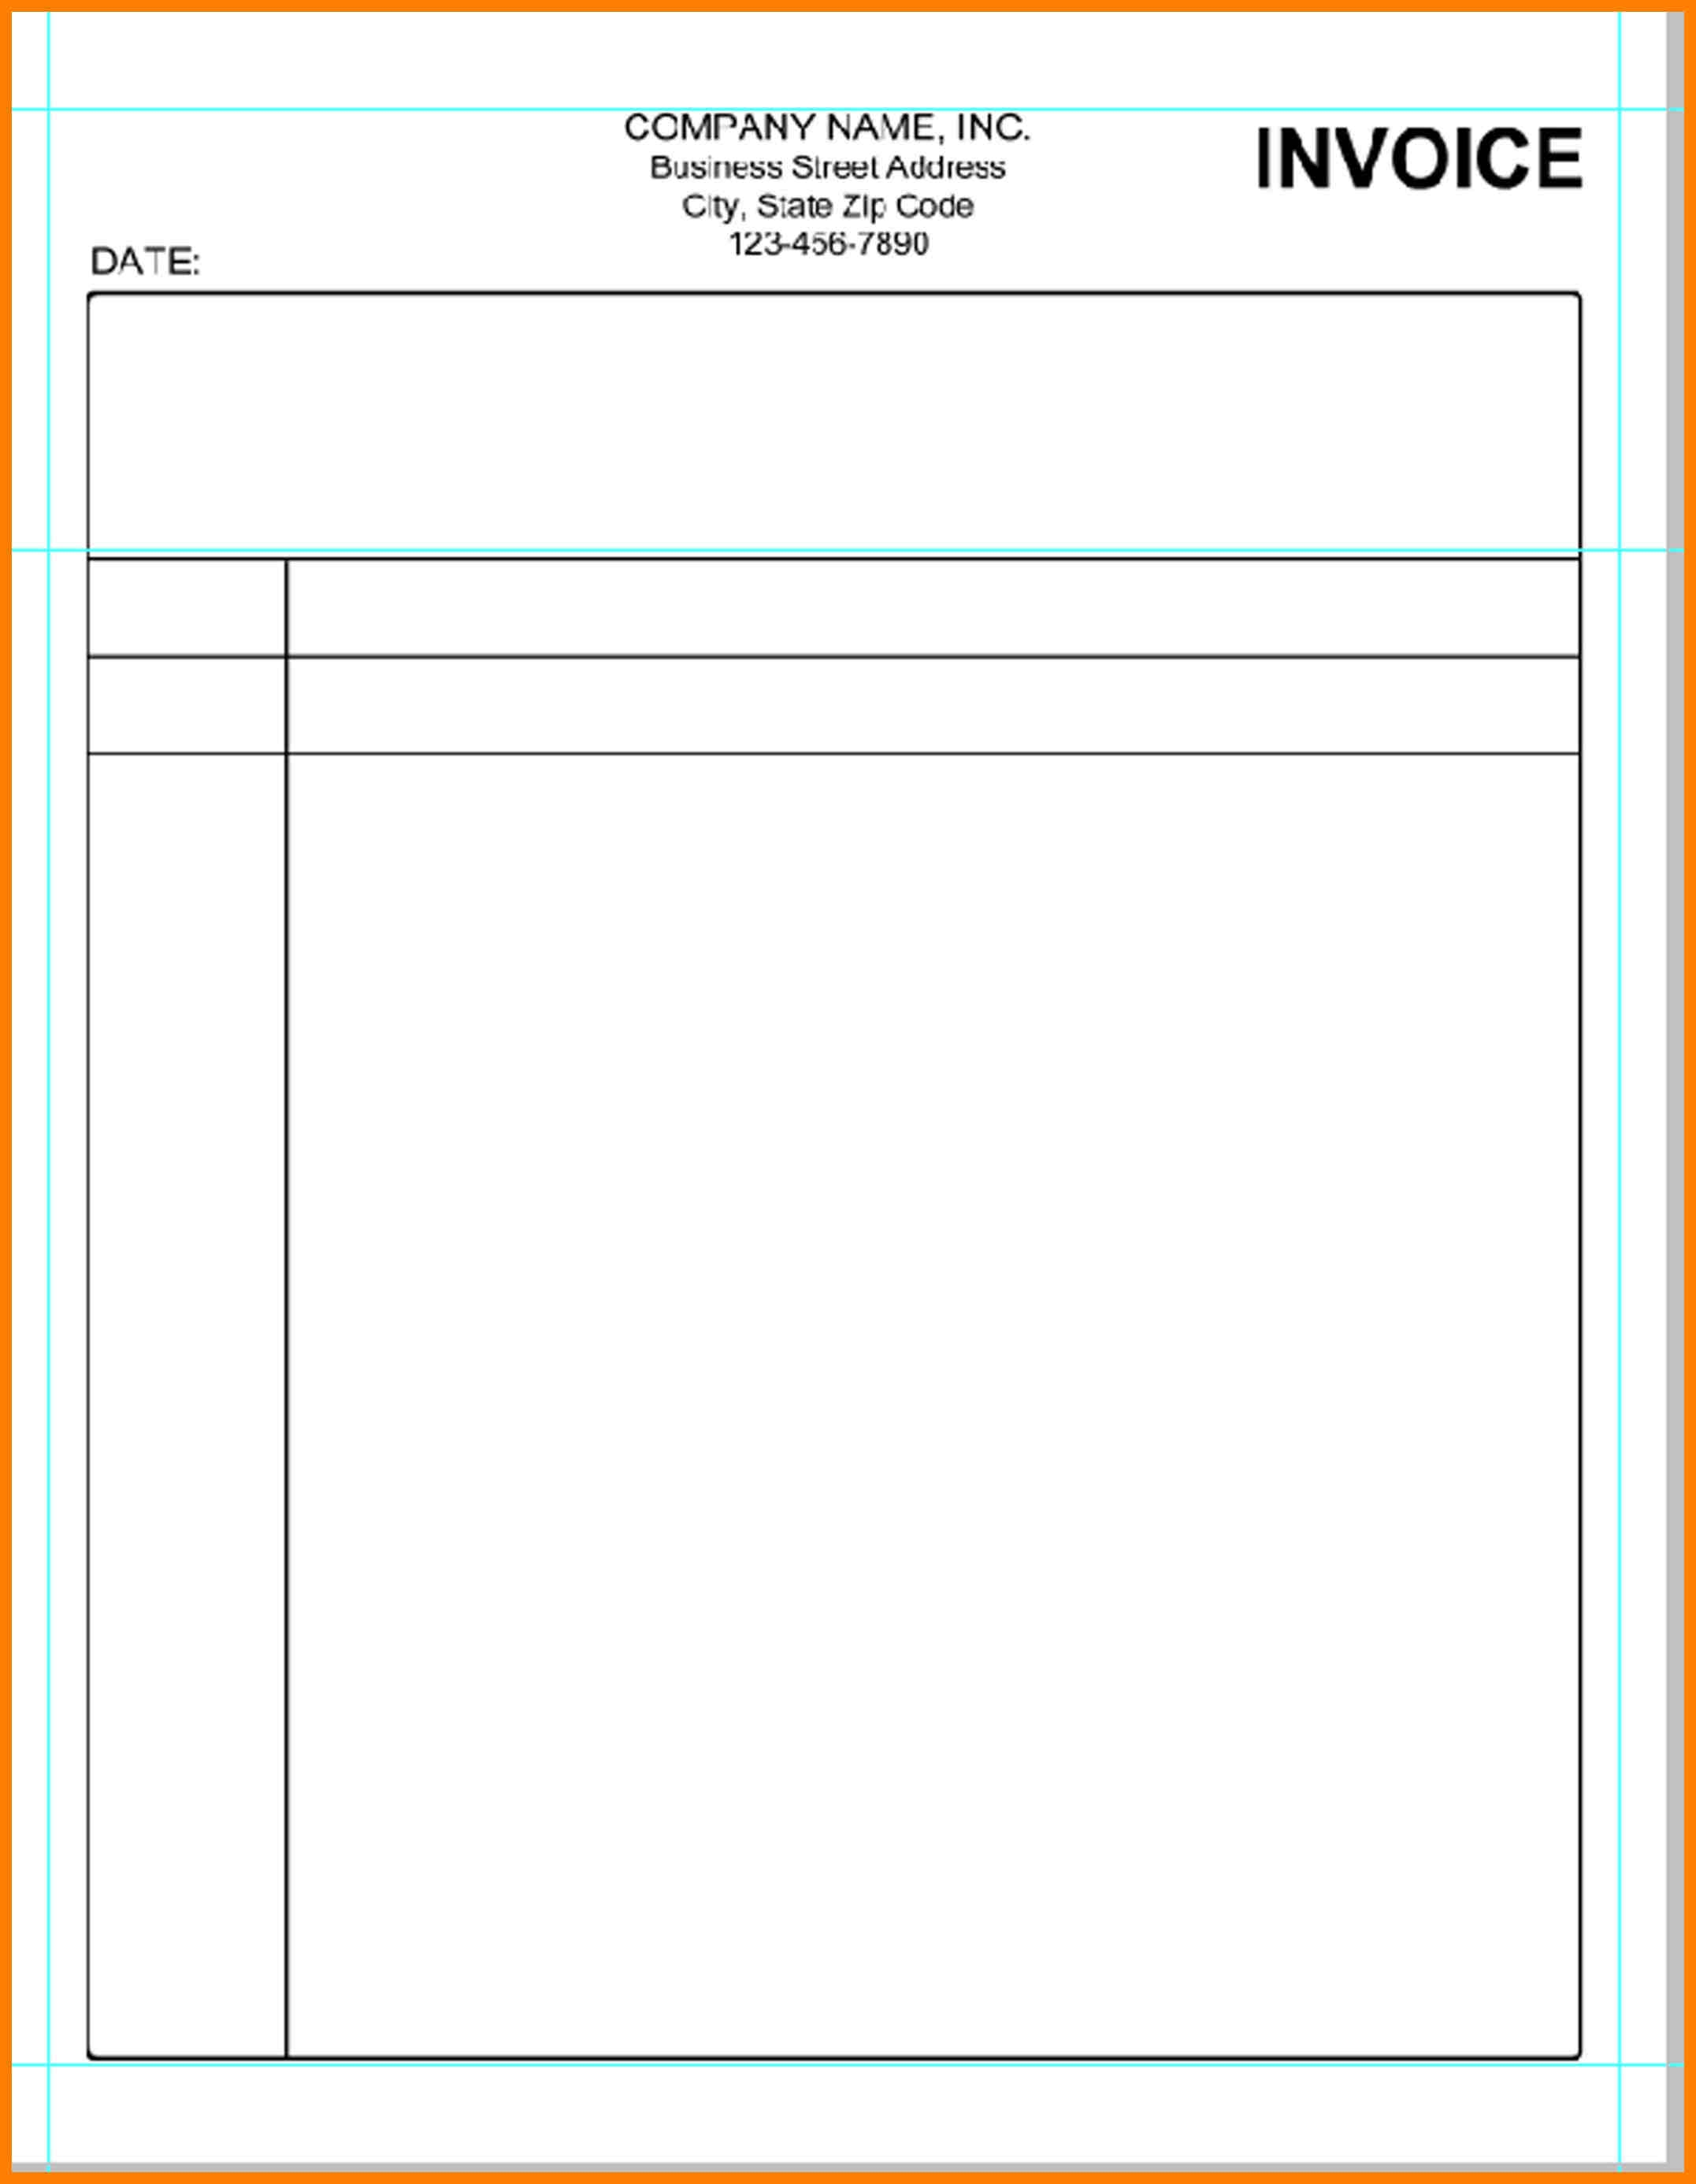 5 blank invoice template word cfo resumed blank invoice template word